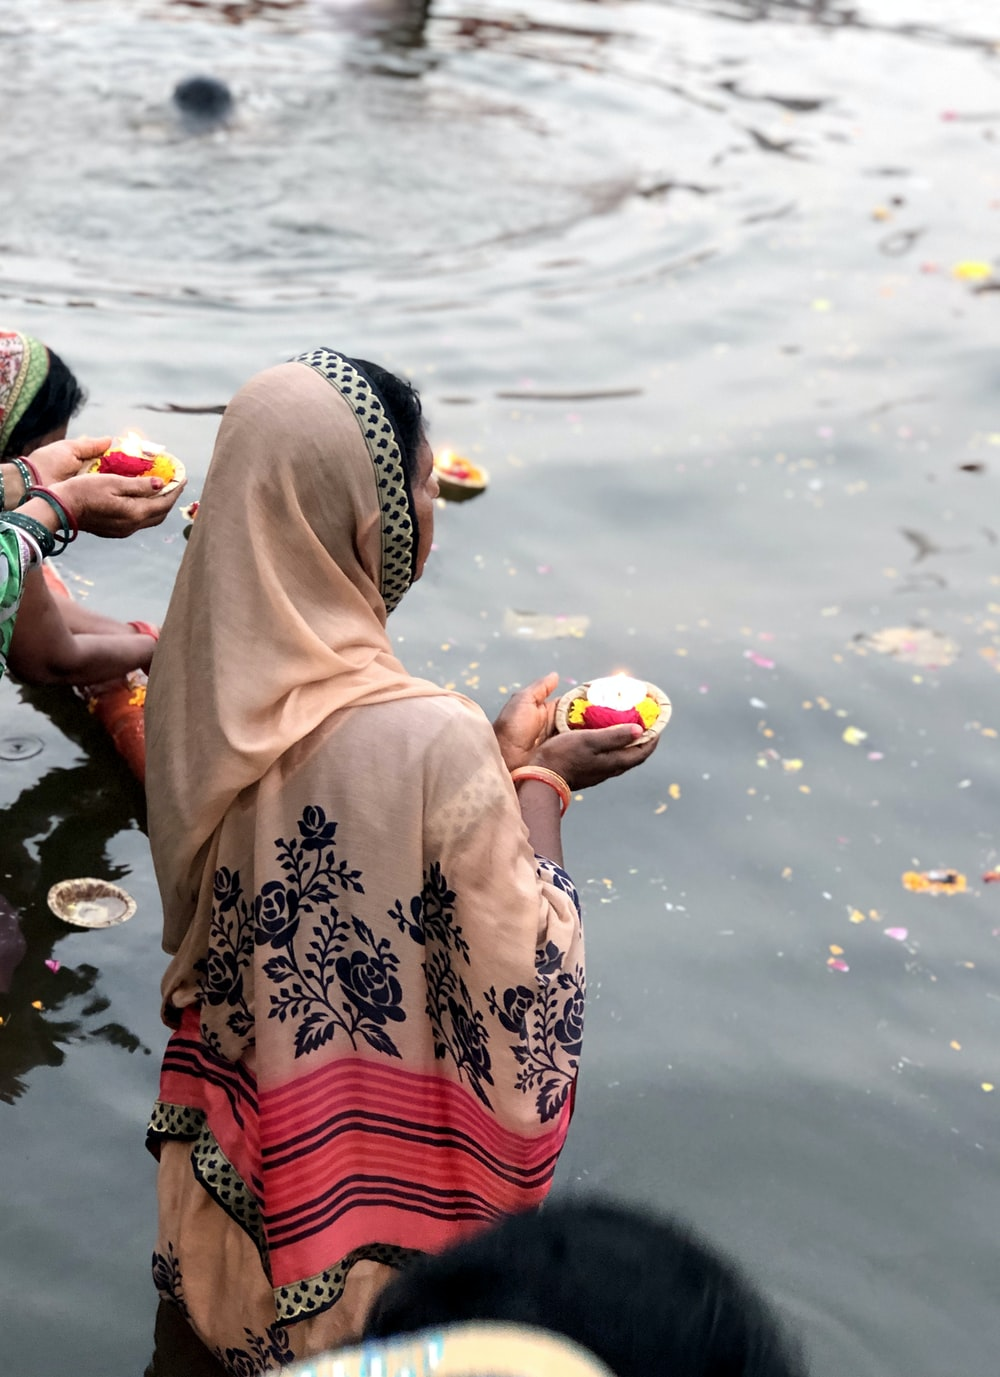 woman wearing pink hijab holding candle while standing on body of water